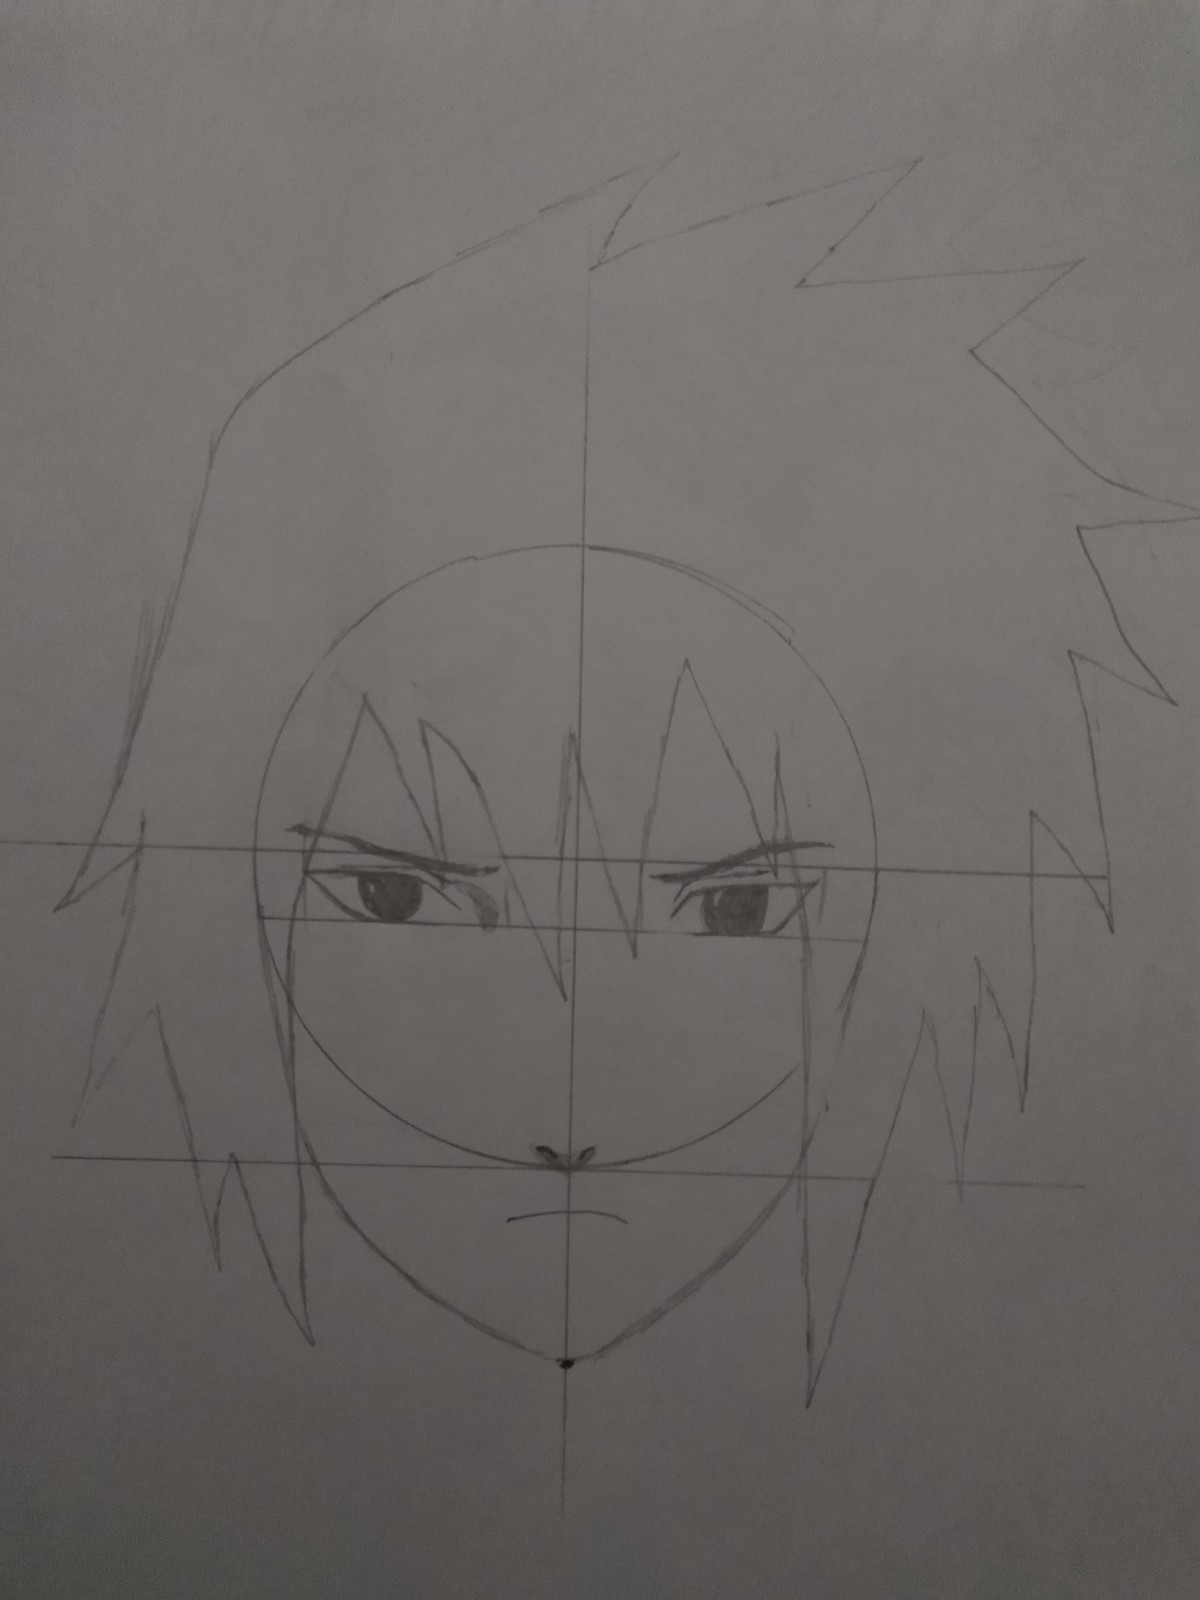 Passo 12 De Como Desenhar o Sasuke - How to Draw Sasuke - Video Teaches Sasuke in Less than 5 Minutes!